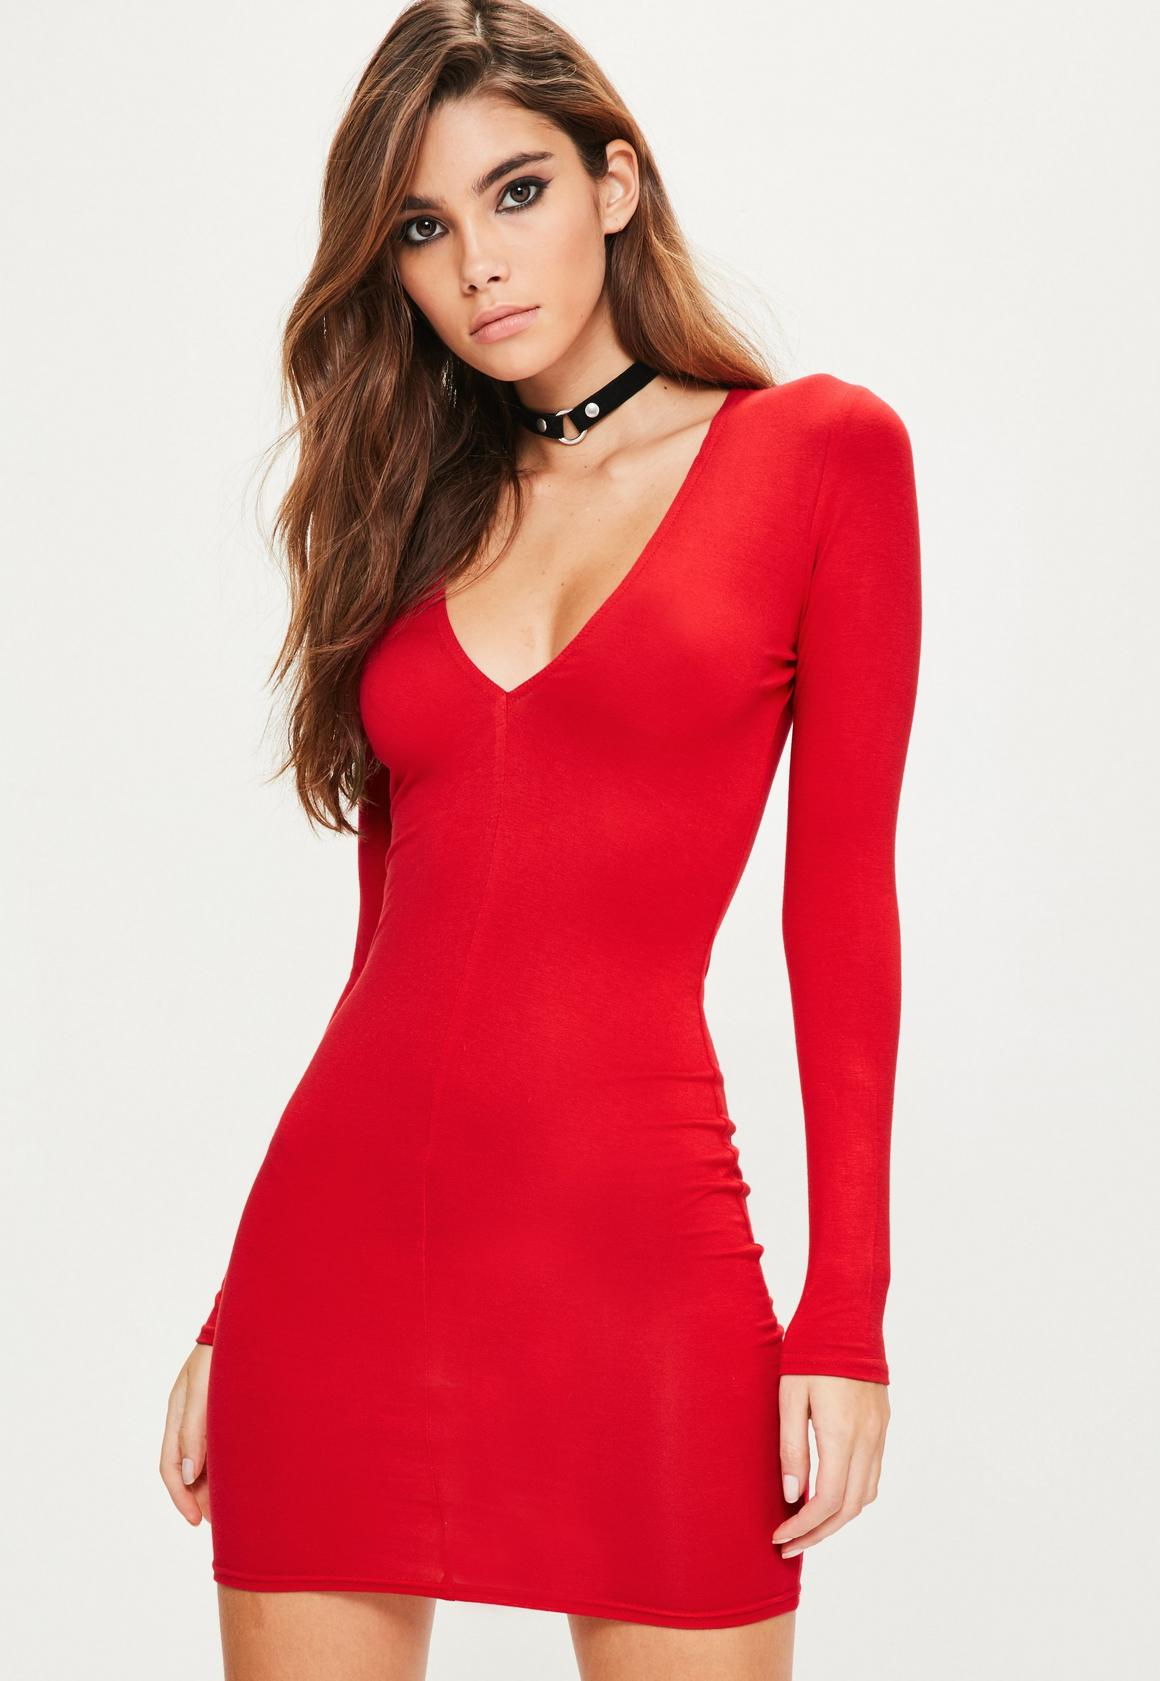 Red Bodycon Homecoming Dress